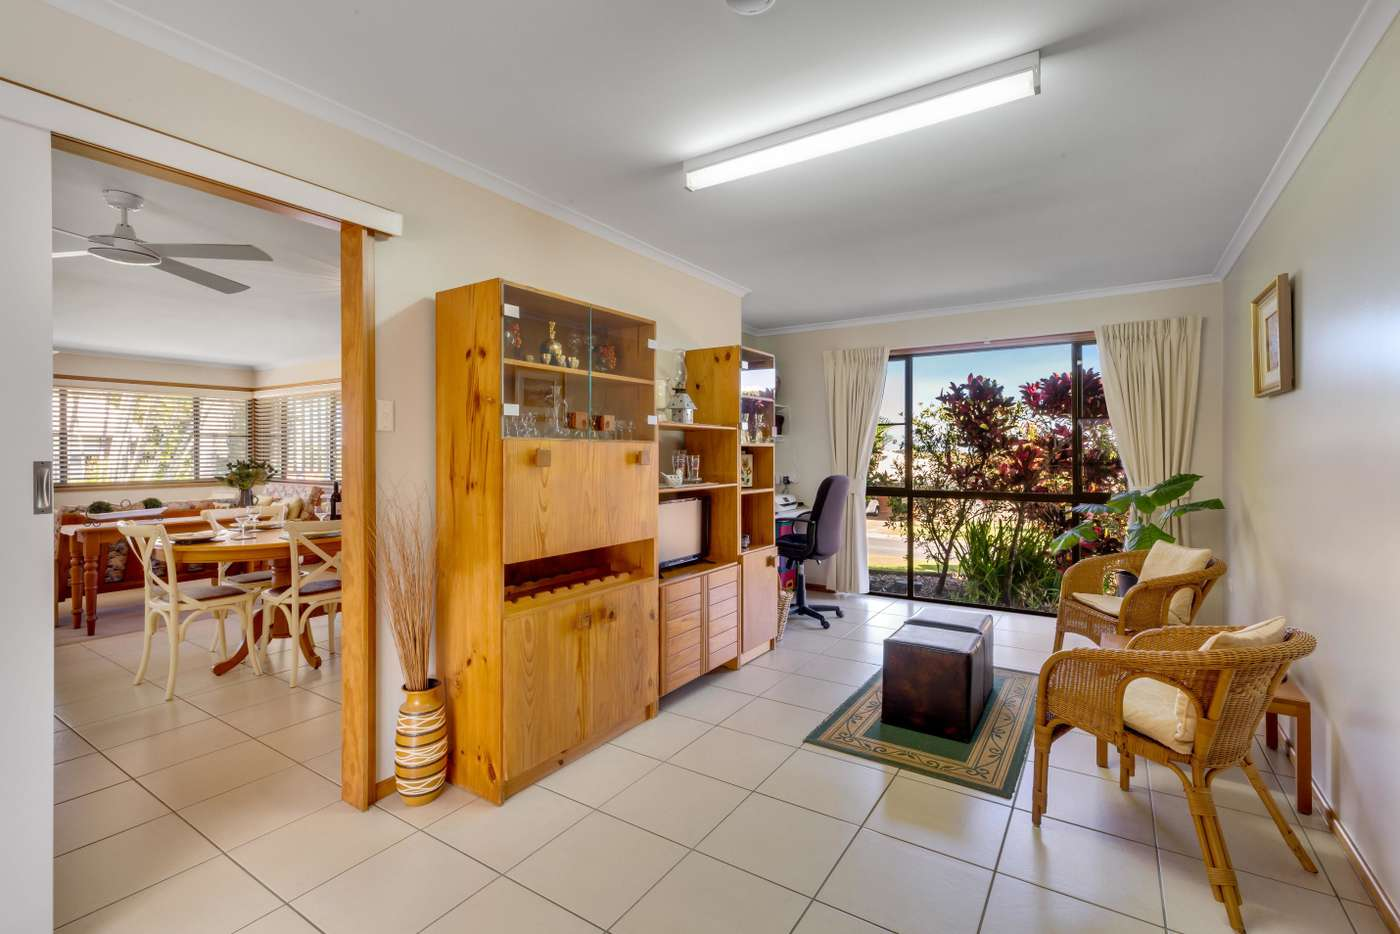 Seventh view of Homely house listing, 1 Galvin Street, Beaconsfield QLD 4740